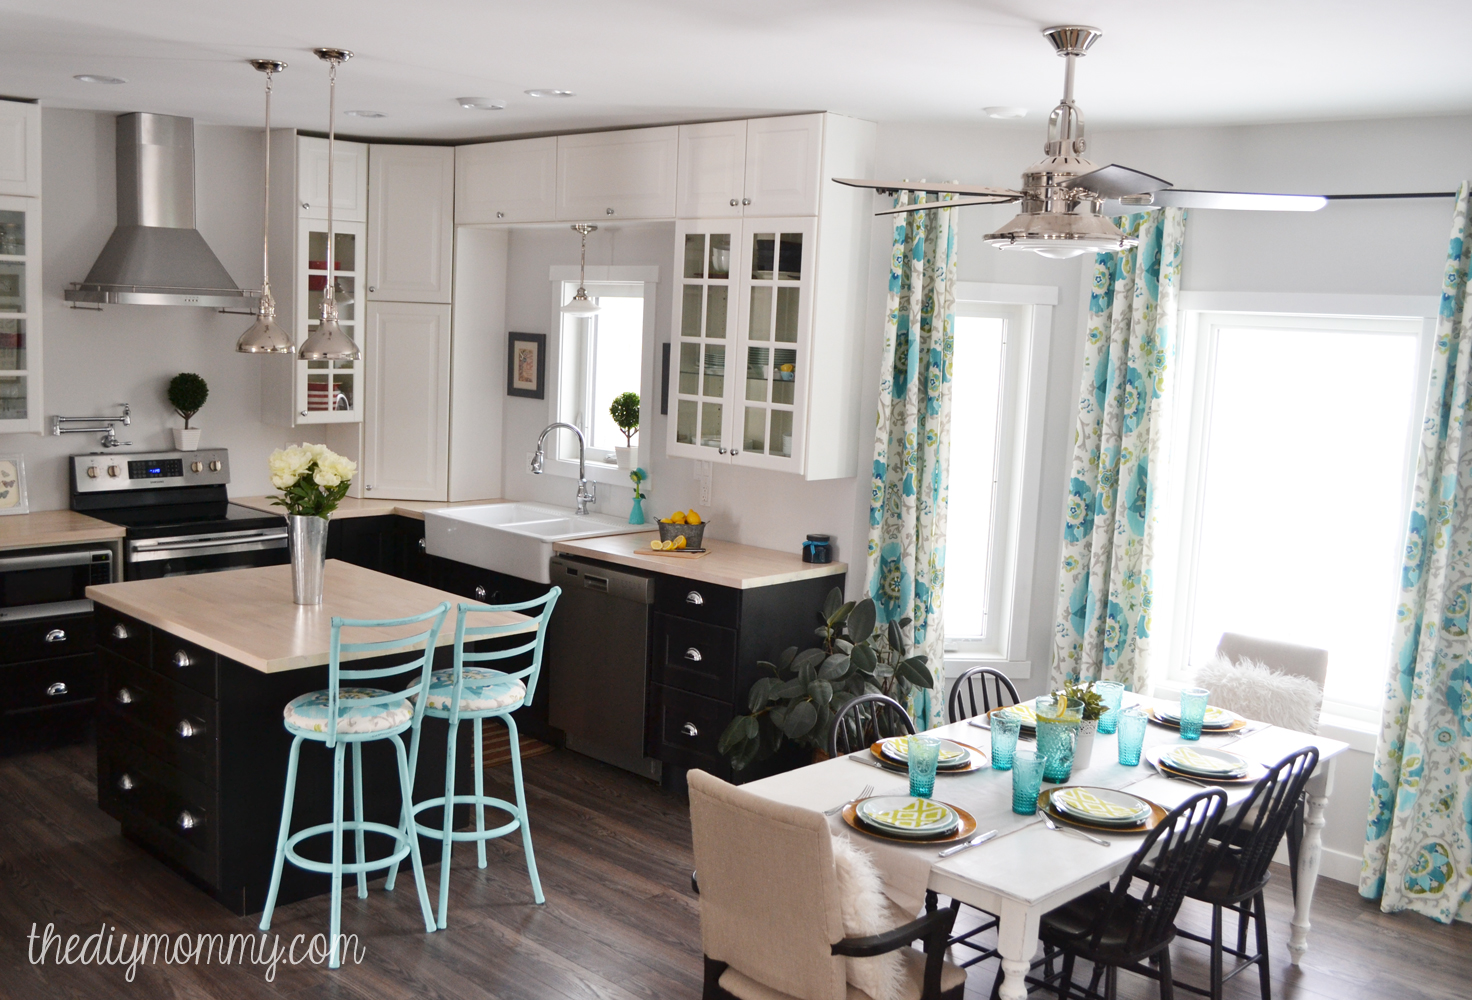 A Black White And Turquoise Diy Kitchen Design With Ikea